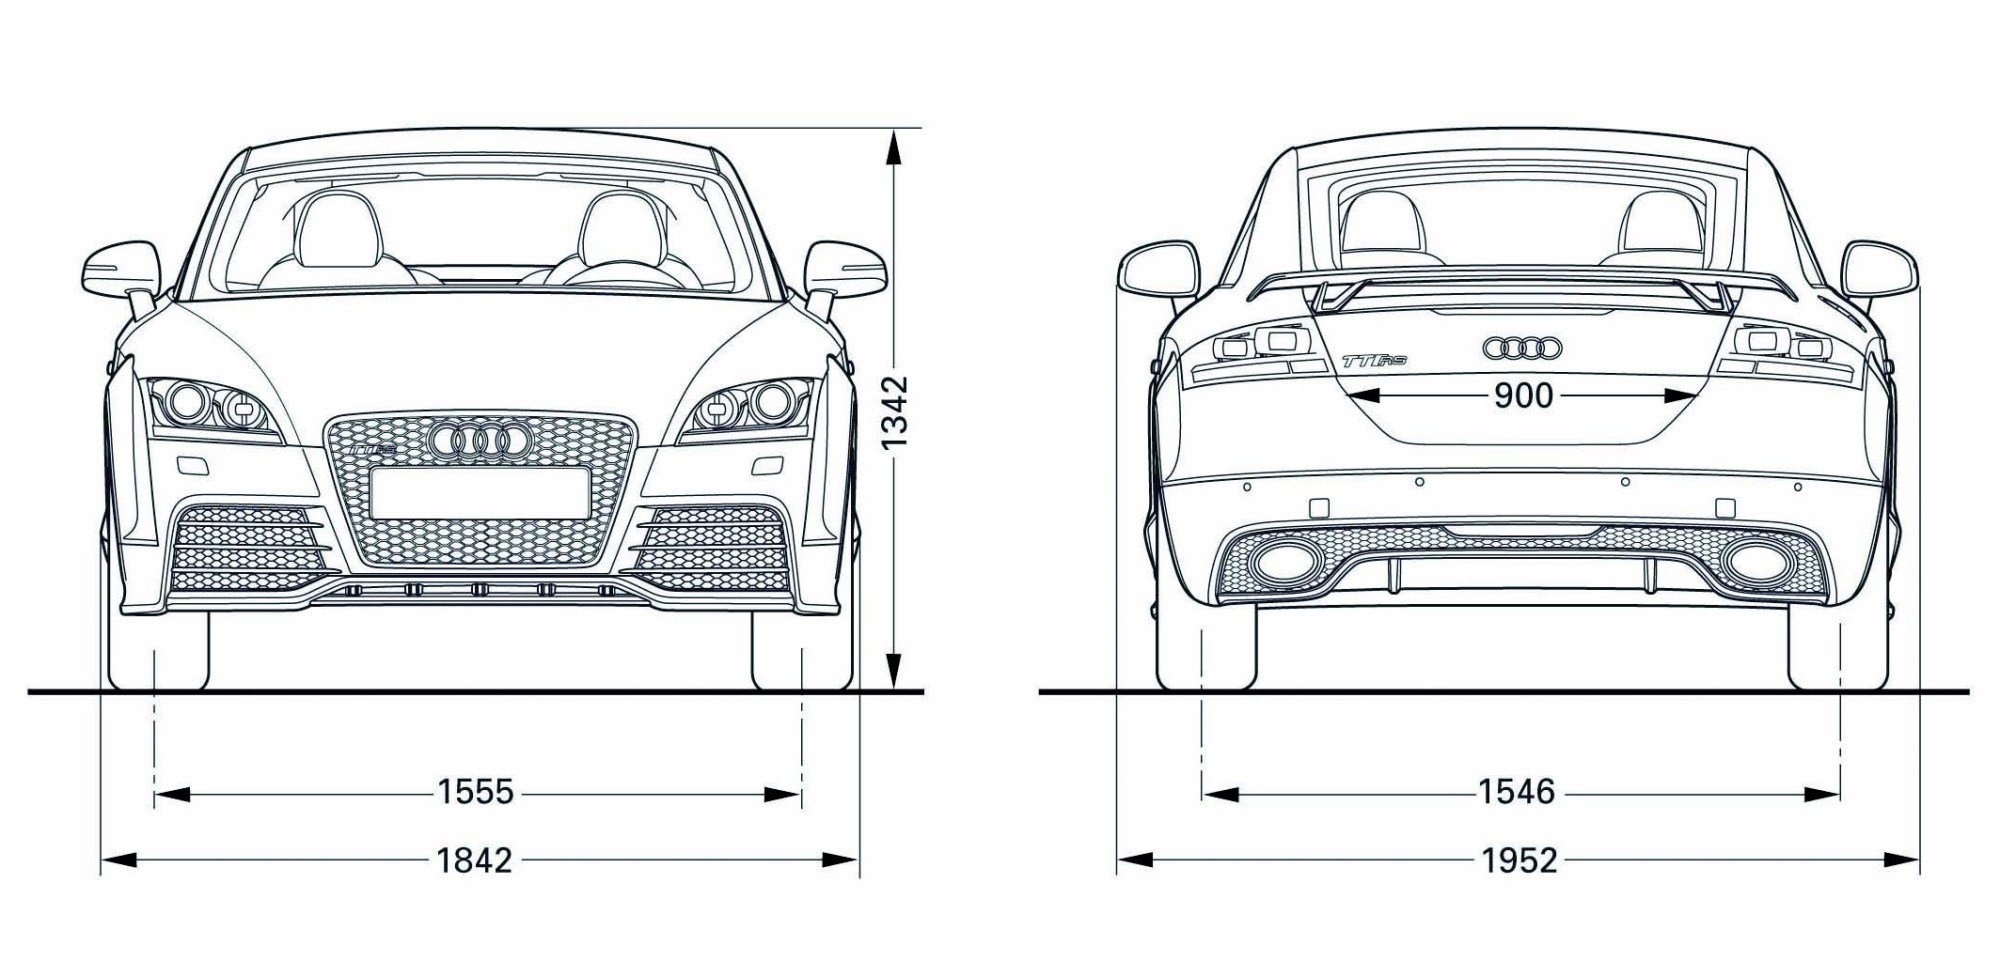 hight resolution of car line art cartype likewise 2005 audi s4 cabriolet on 2000 saab convertible top diagram